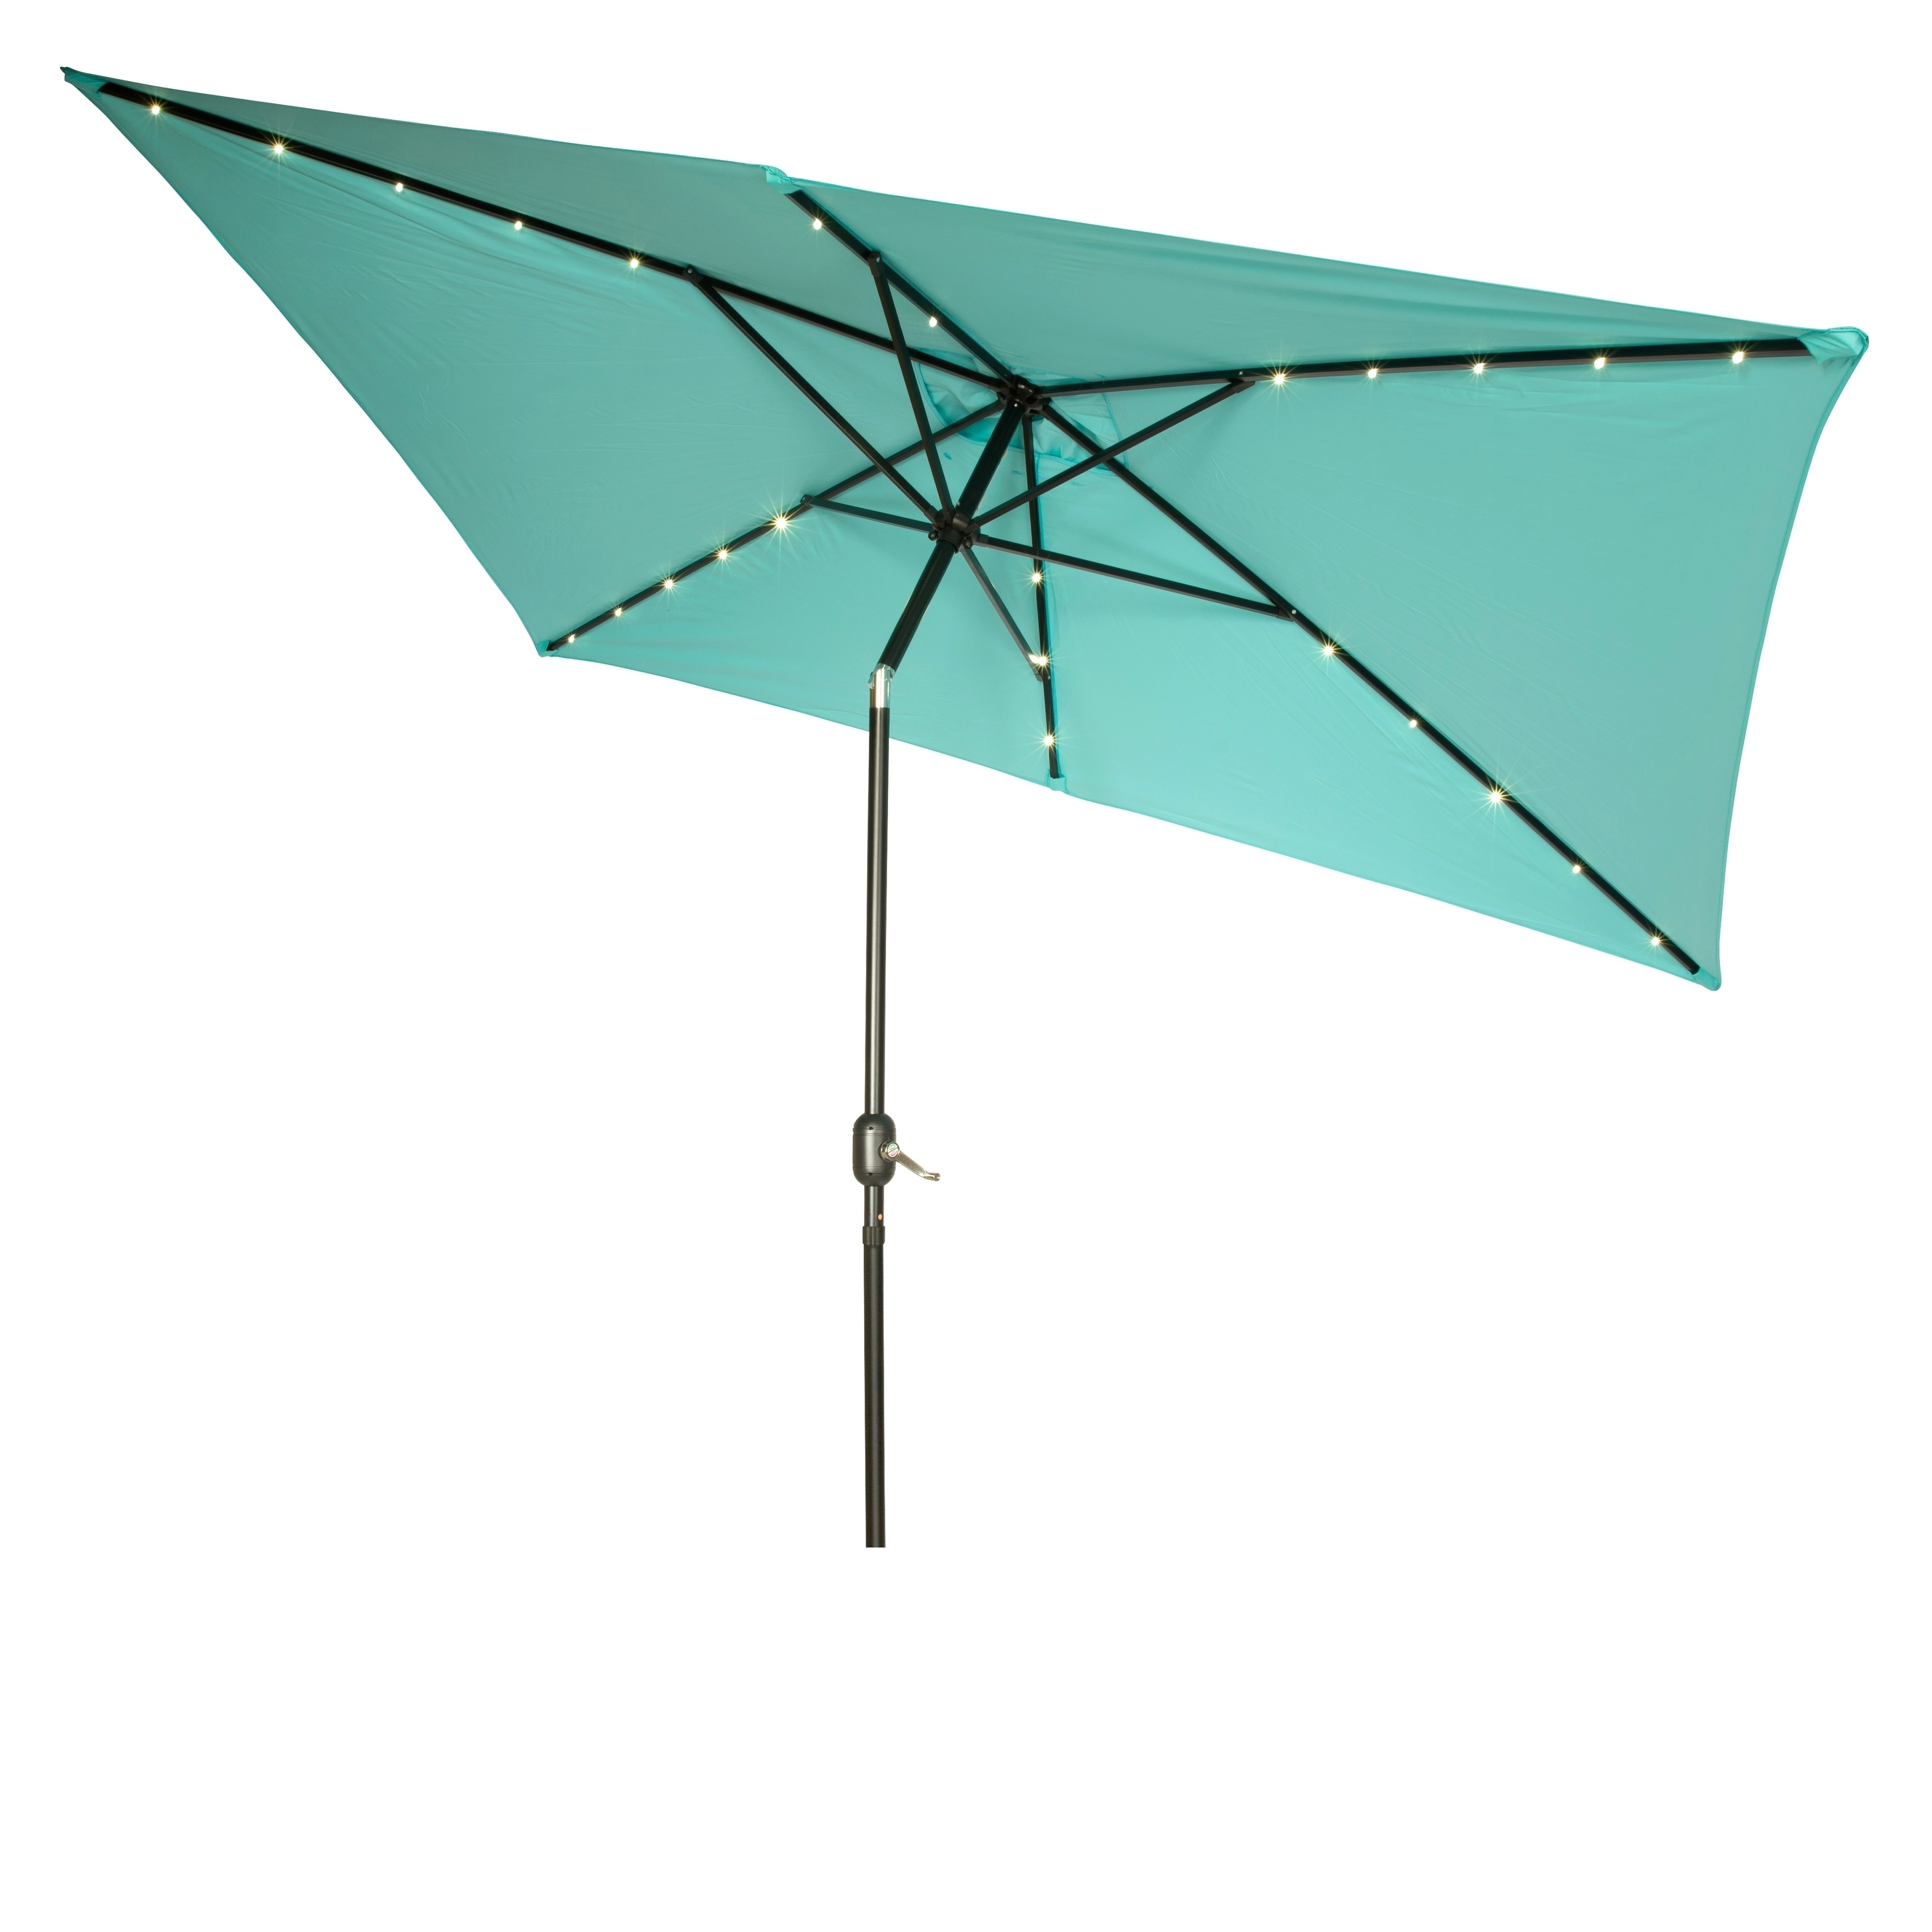 Shop Rectangular Solar Powered Led Lighted Patio Umbrella – 10' X With Regard To Widely Used Lighted Patio Umbrellas (View 14 of 20)